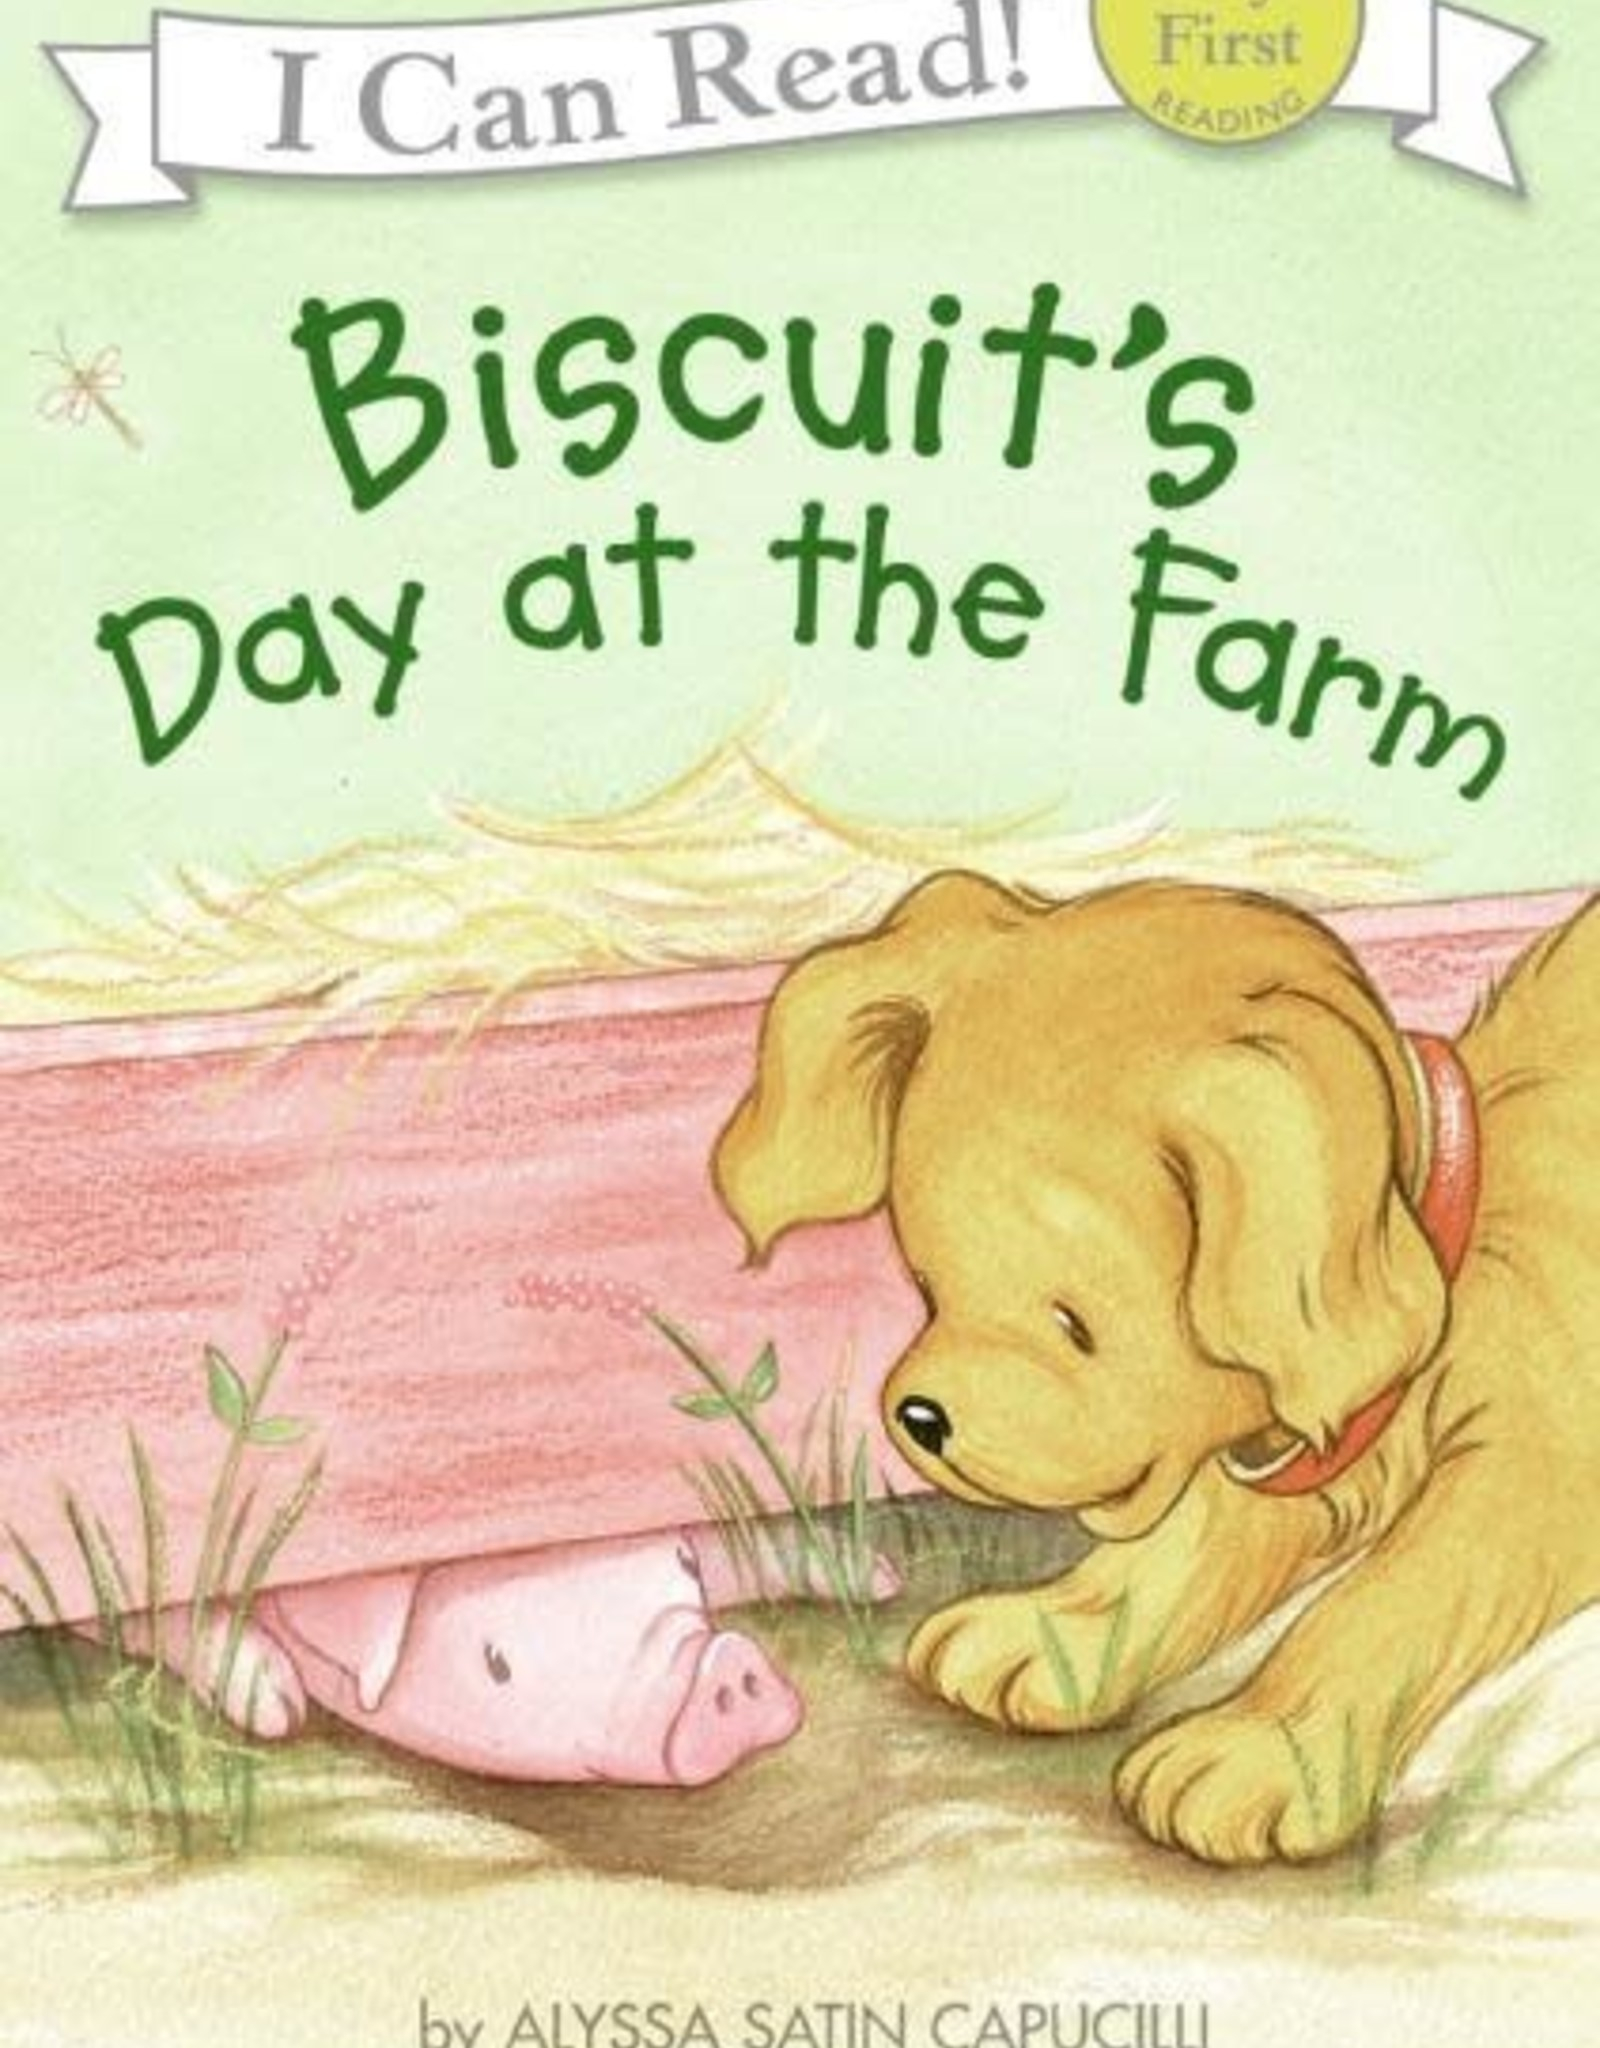 I Can Read! Biscuit Day at the Farm